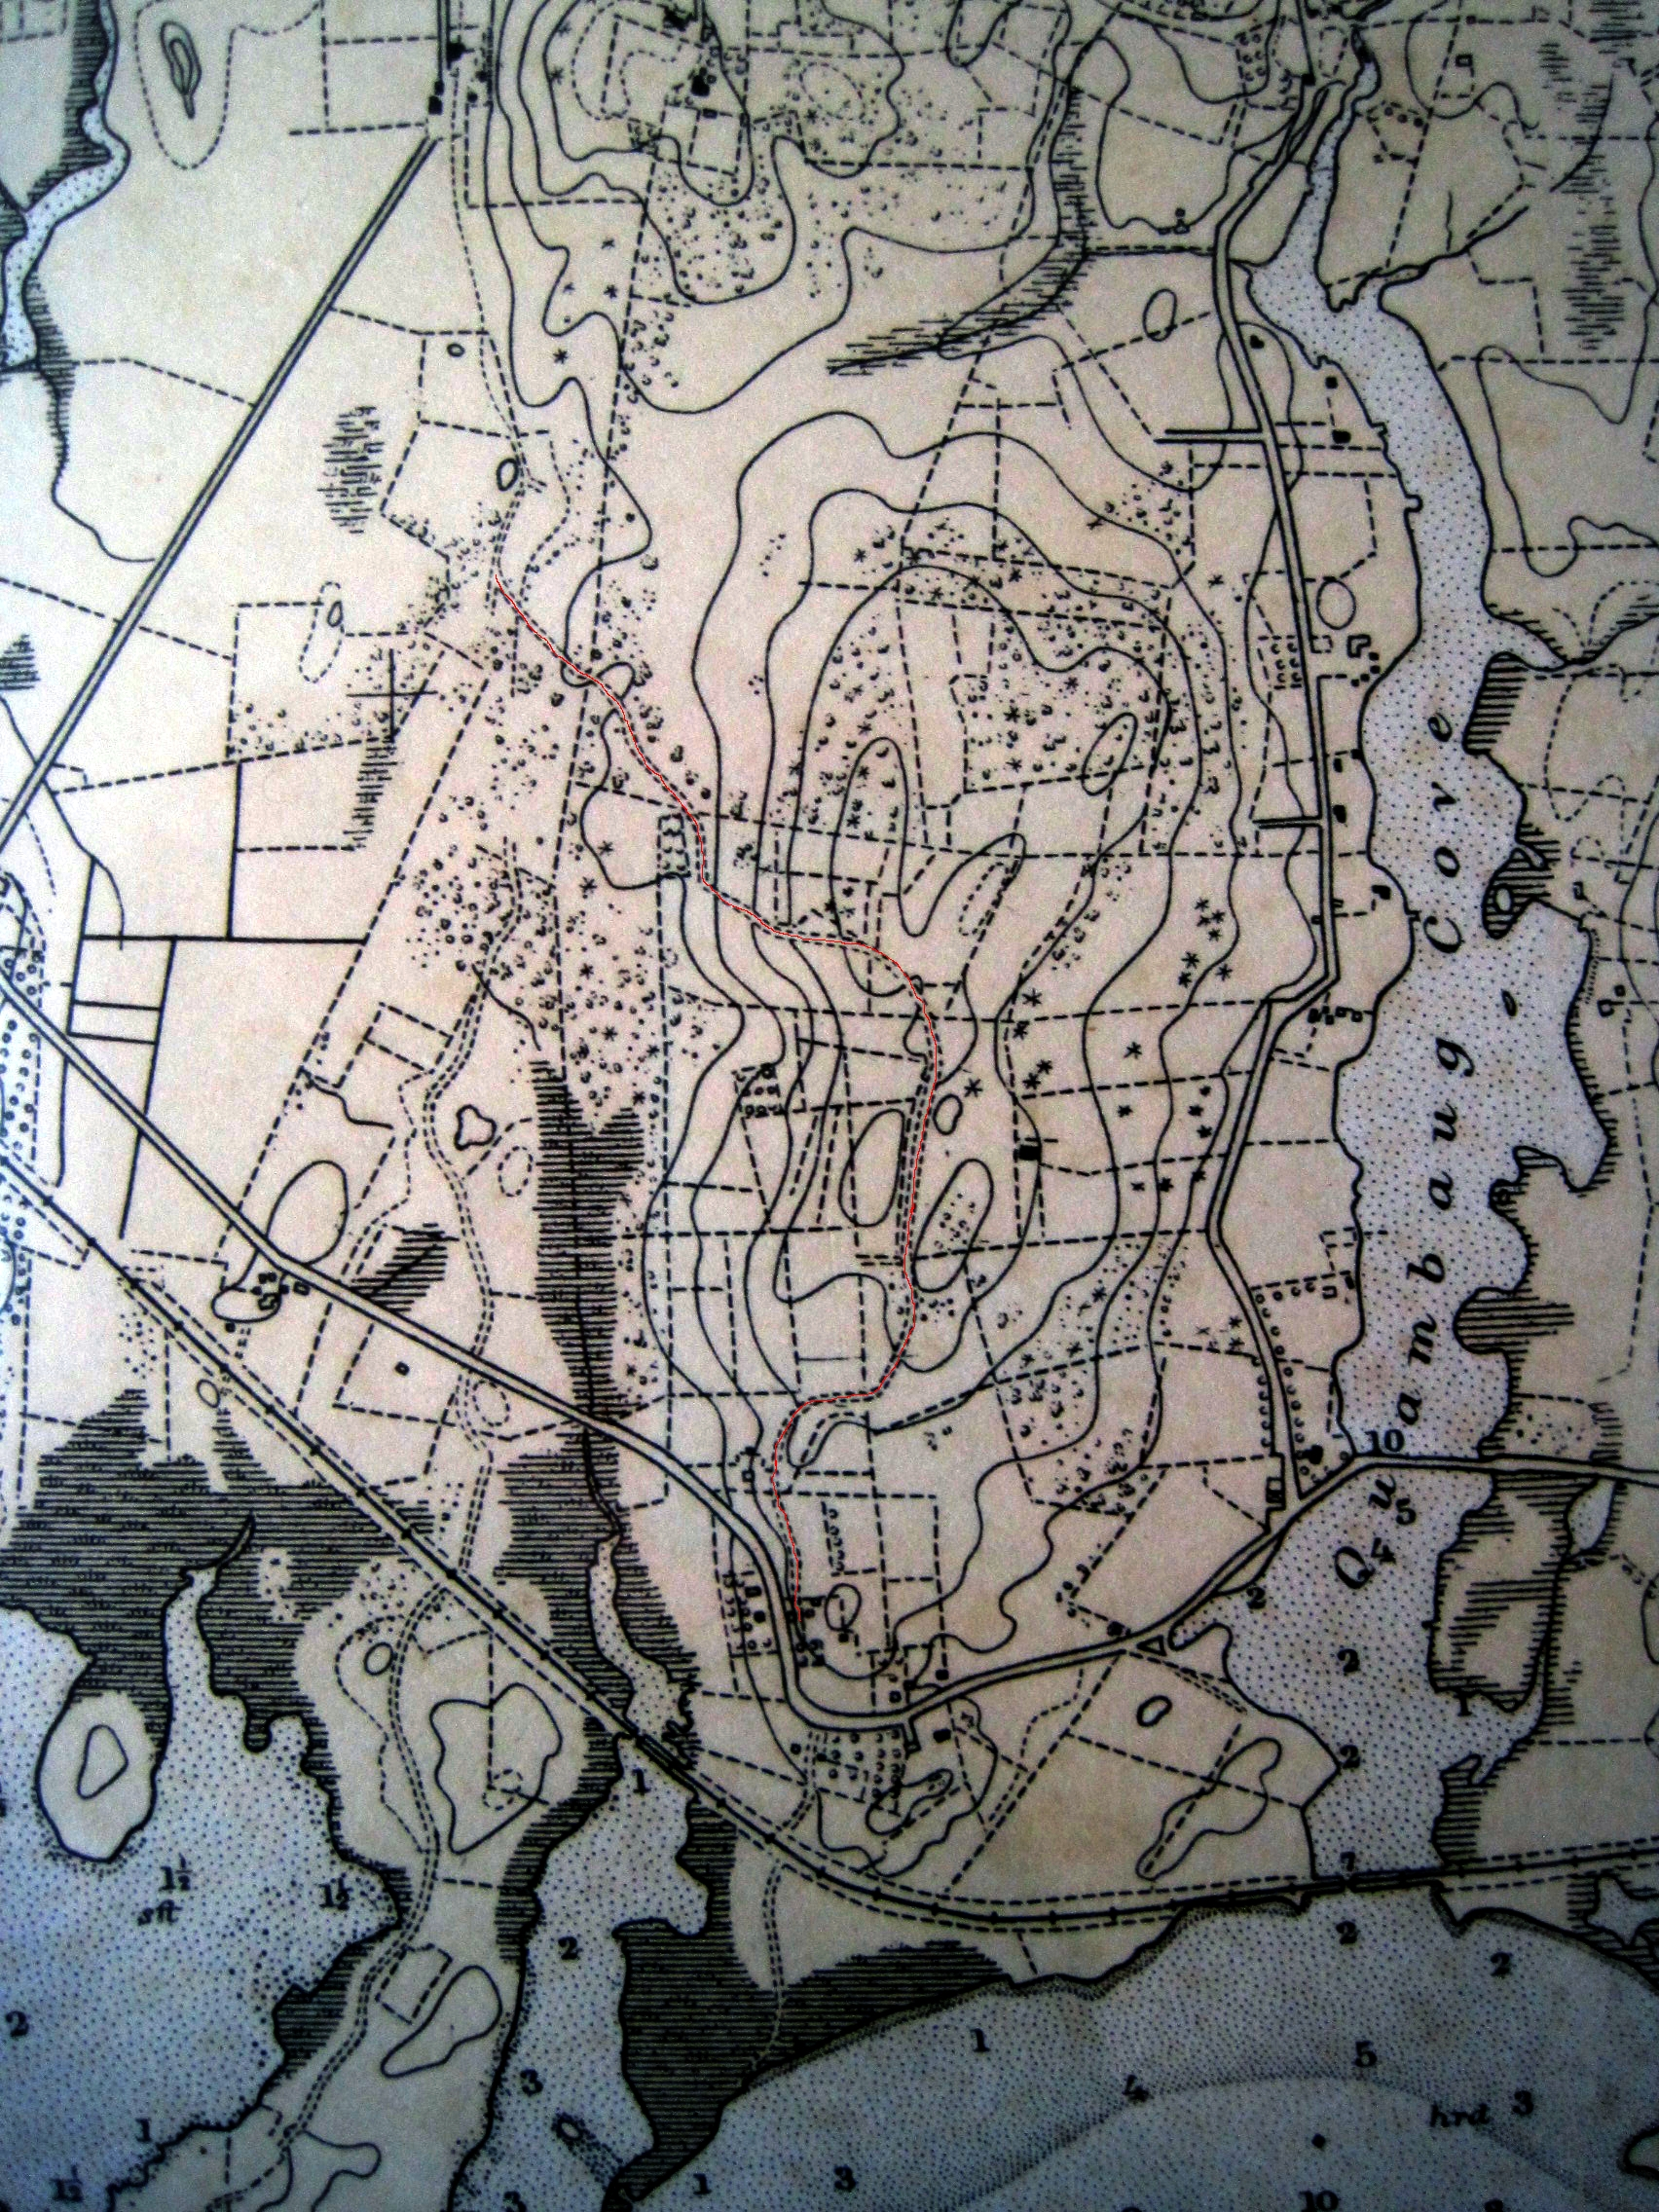 Quiambaugmistuxet valley a history of a valley and its two ridges the old mystic road from a 1932 chart of fishers island sound it is marked in red if this appears at too low a resolution on your monitor nvjuhfo Images